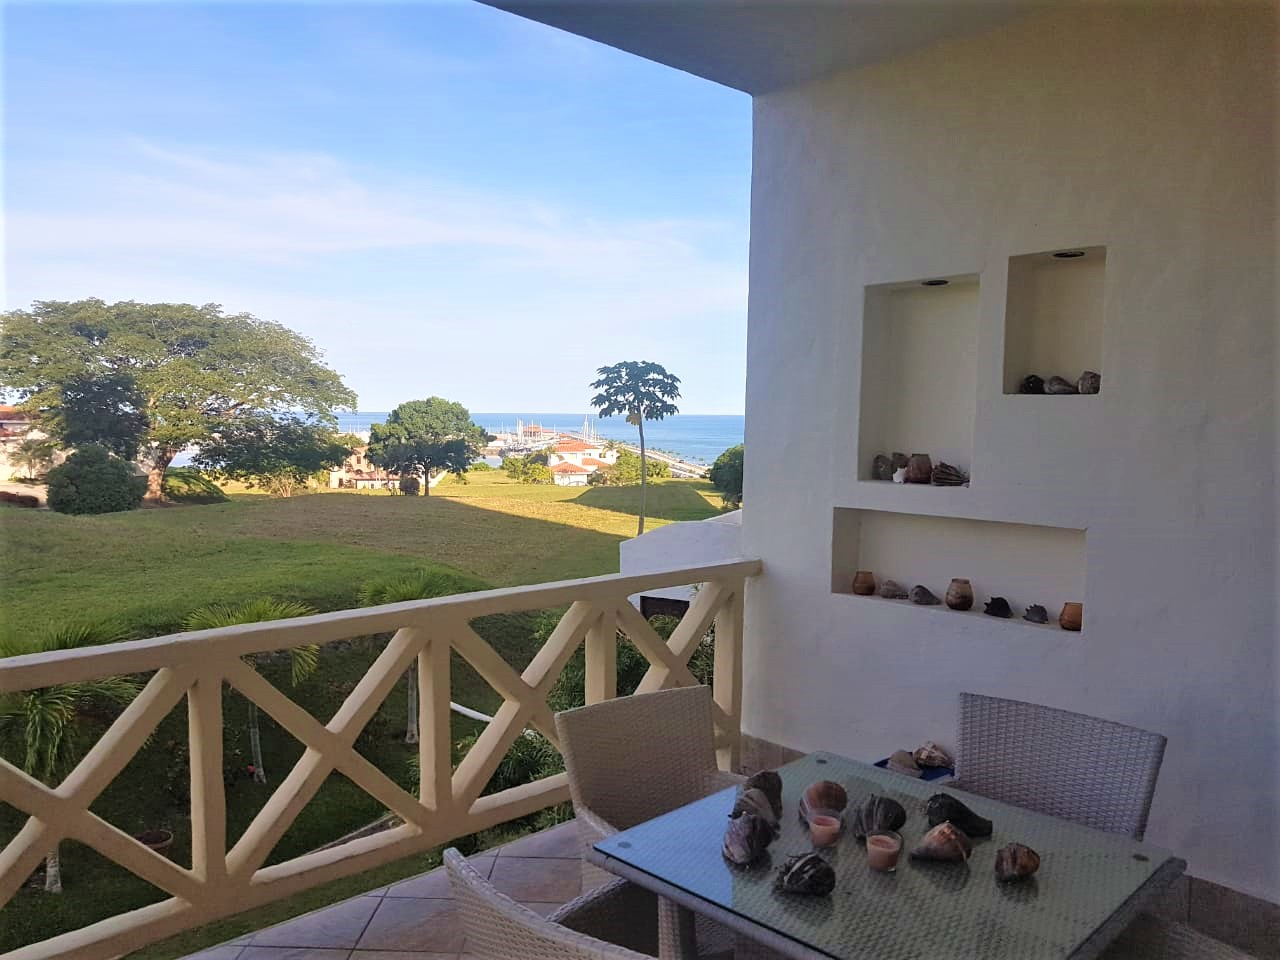 3 bedroom apartment with view for sale by the beach